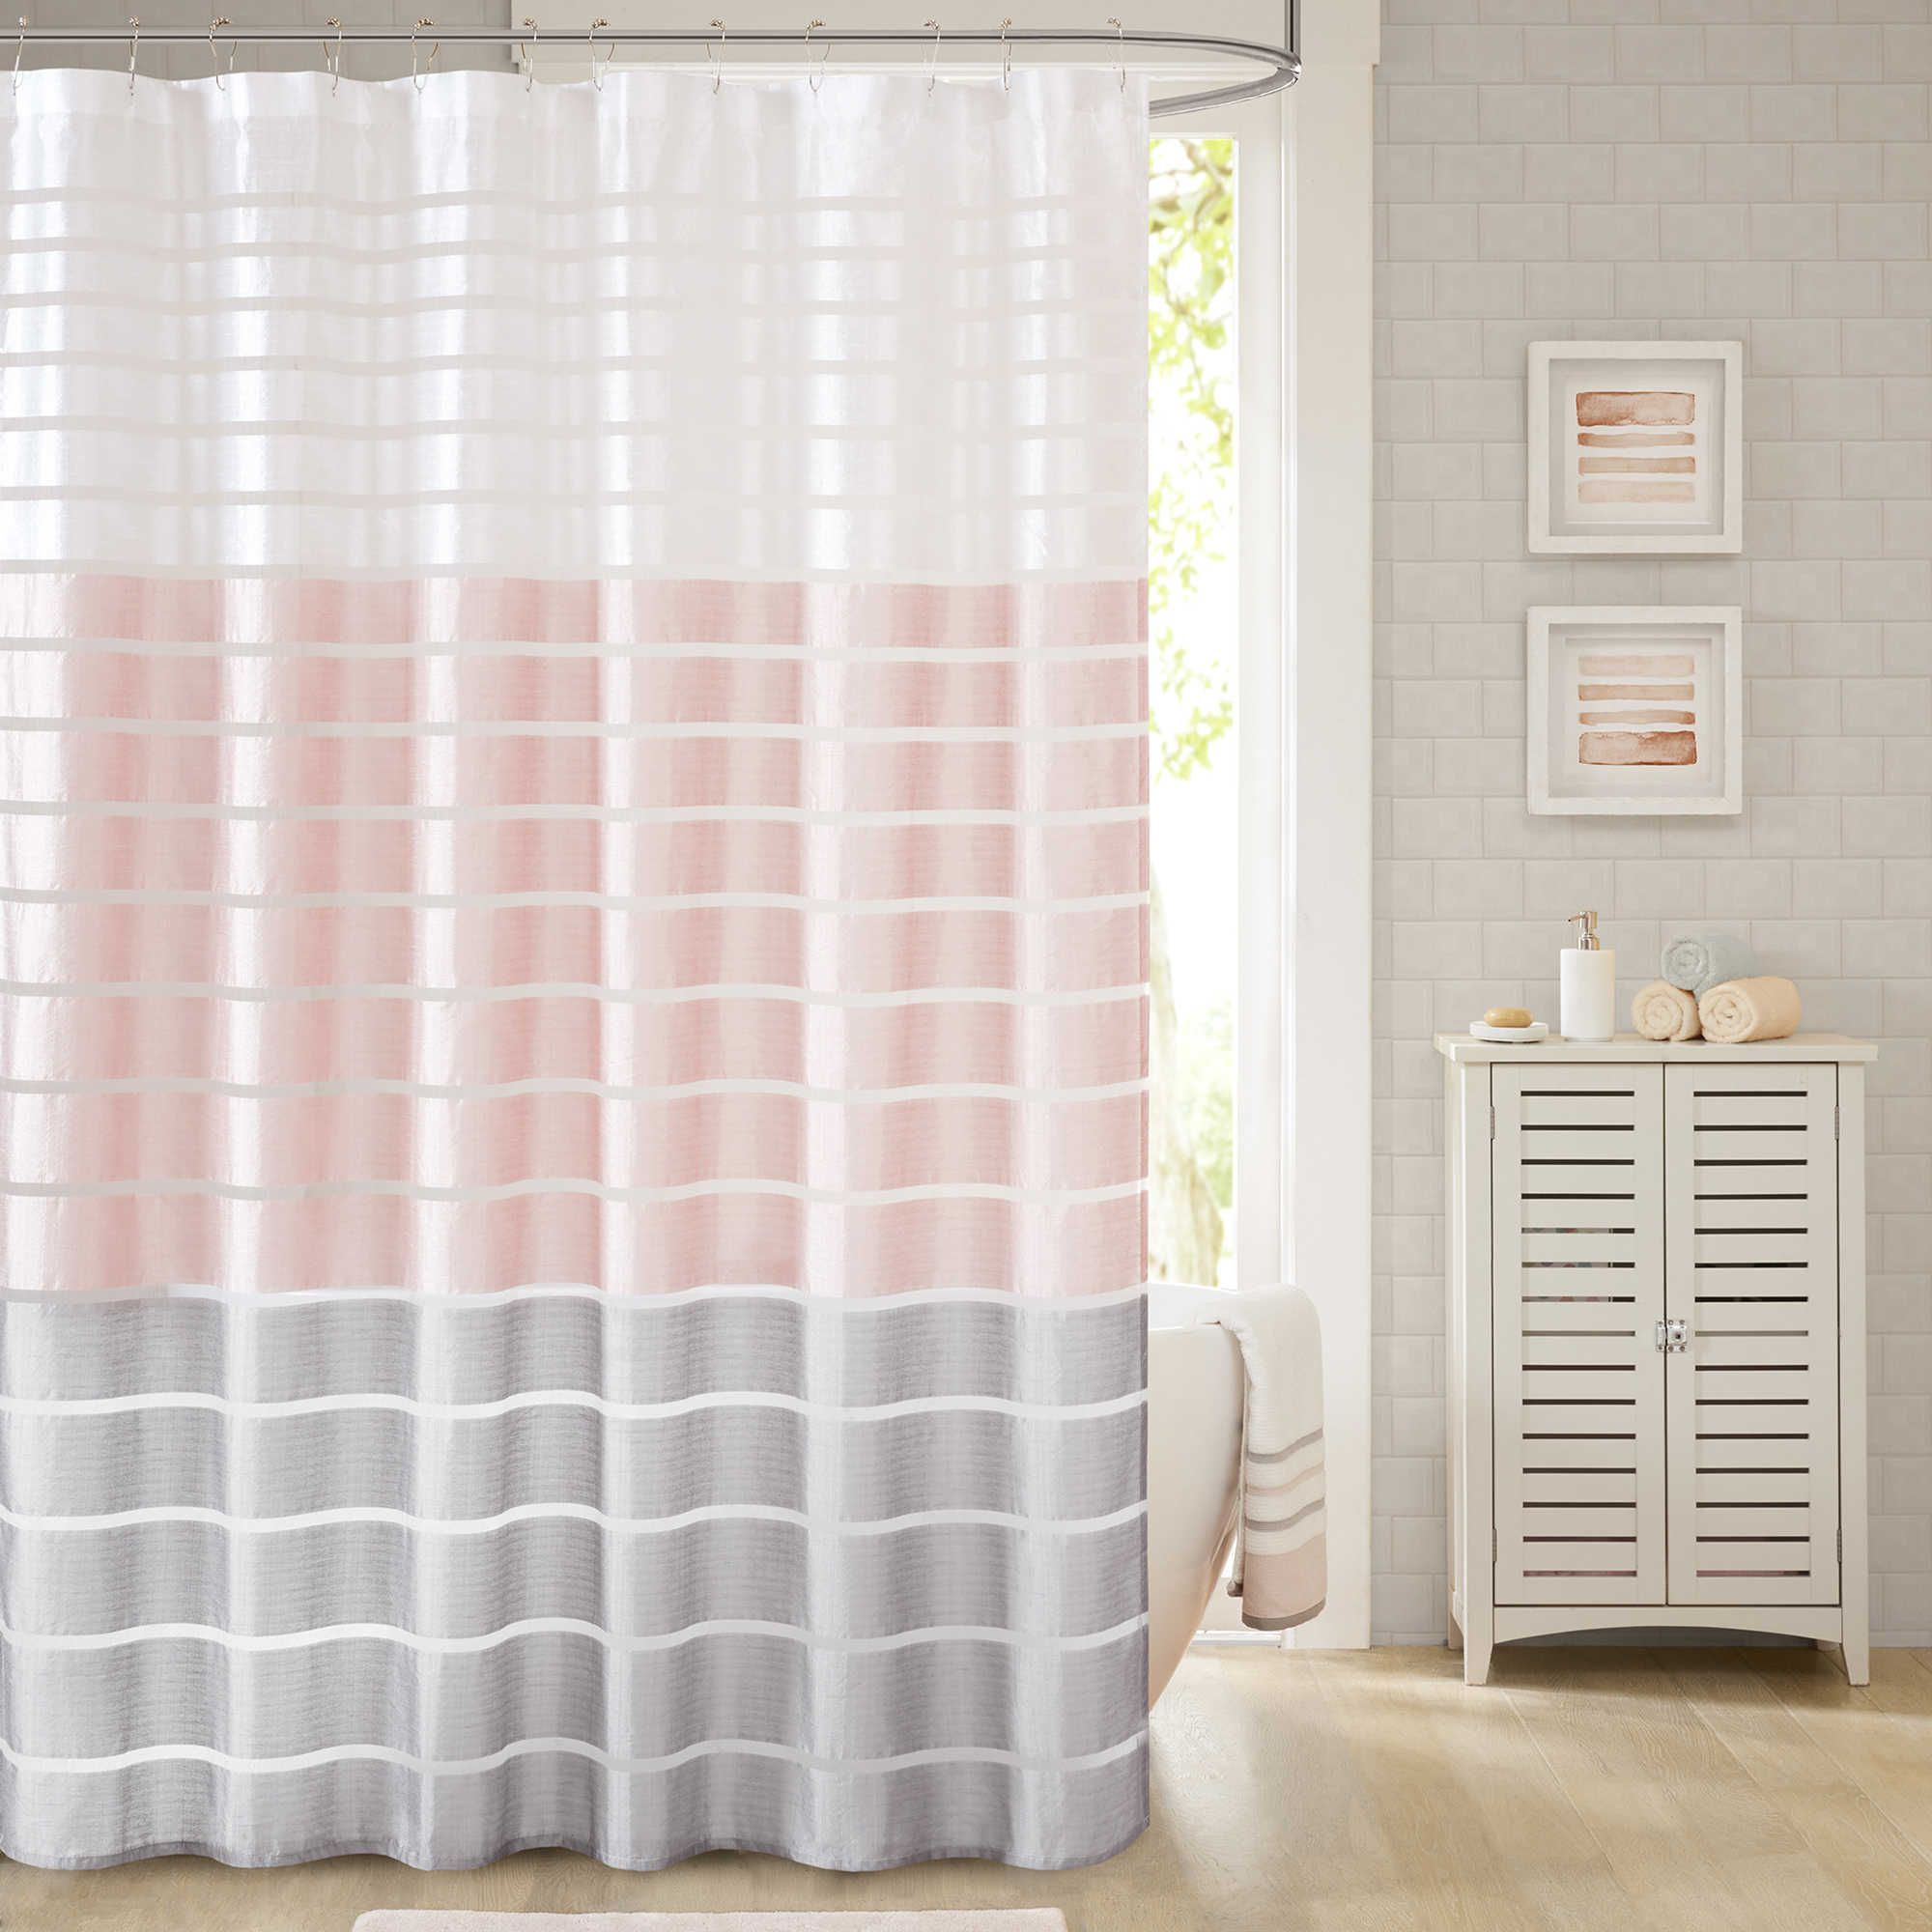 Demi 72 Inch X 96 Inch Shower Curtain In Blush Pink Shower Curtains Gray Shower Curtains Bathroom Shower Curtains